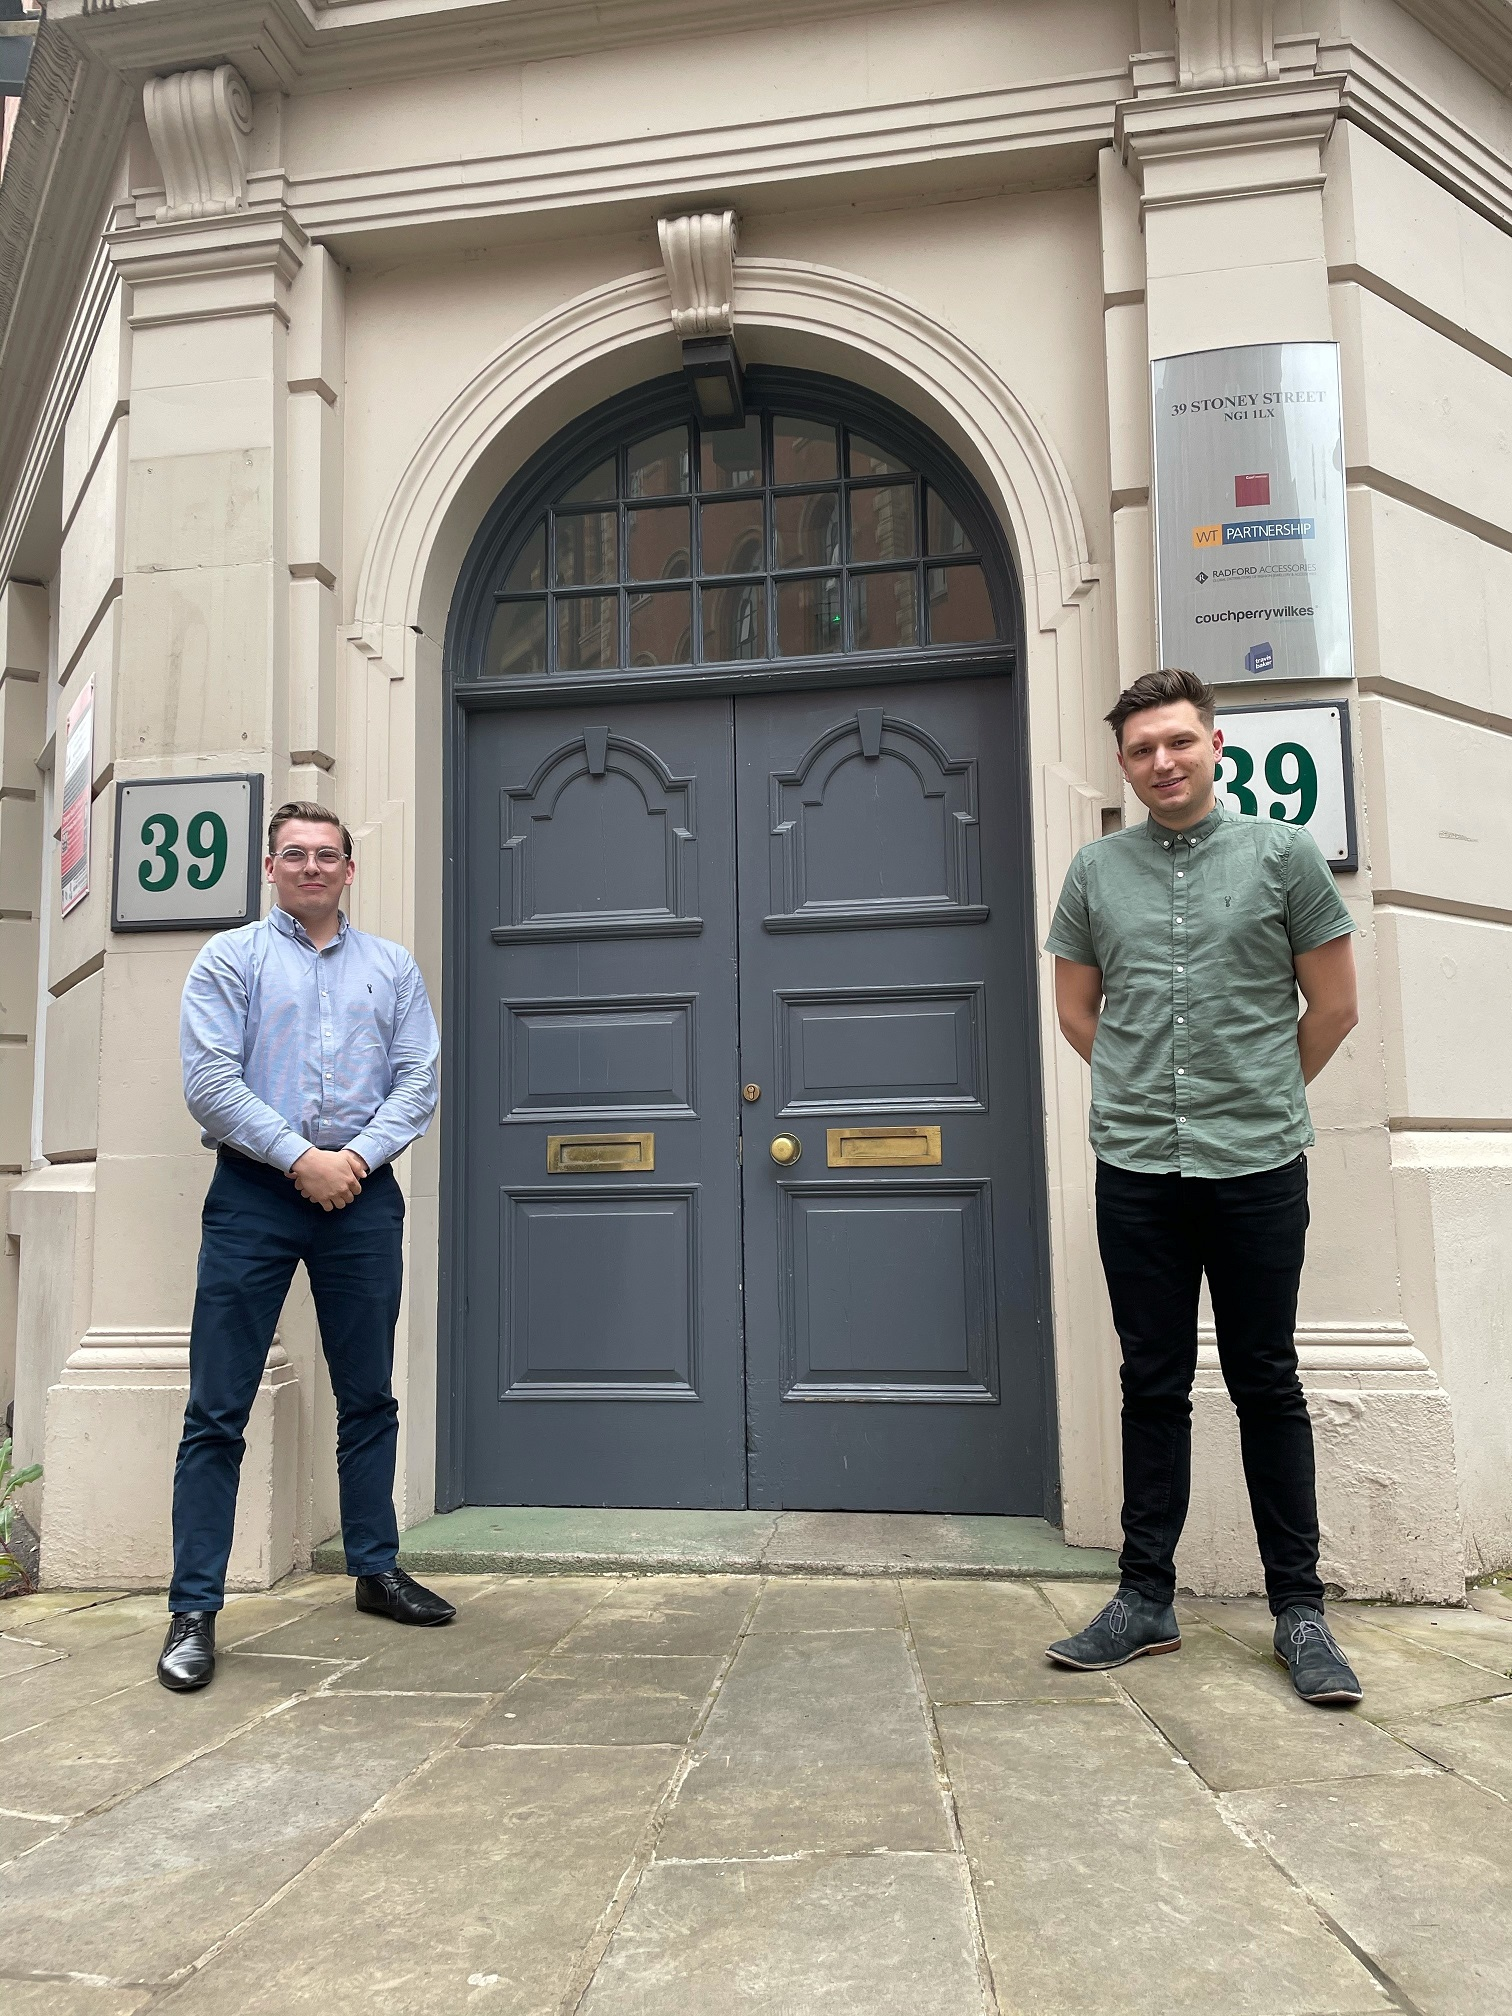 DOUBLE HIRE CEMENTS INVESTMENT IN THE NEXT GENERATION FOR M&E FIRM